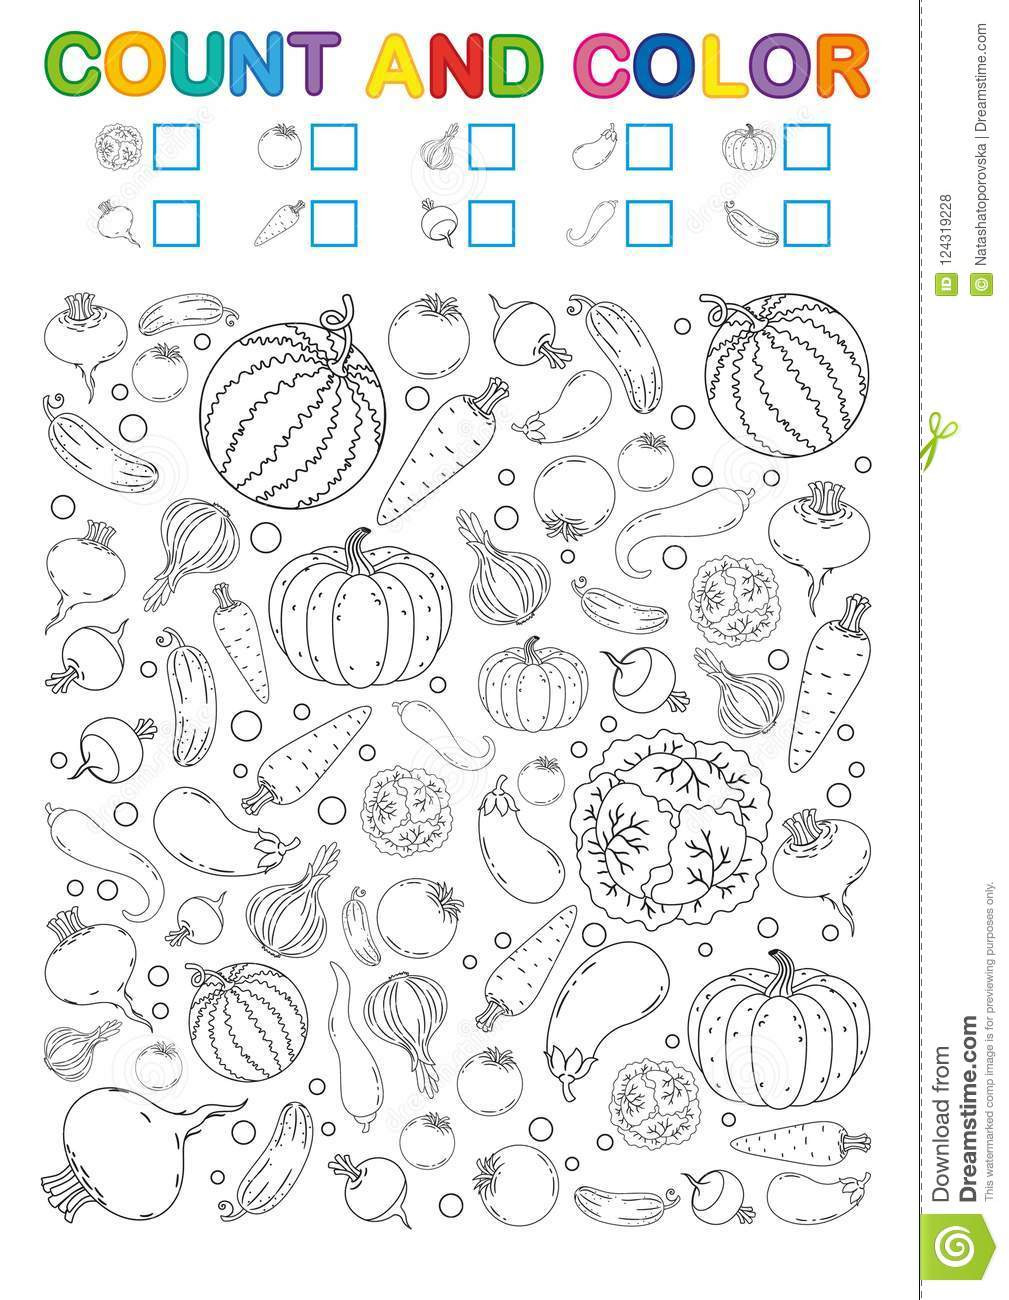 coloring book page count color printable worksheet kindergarten preschool exercises study numbers bright ve able harvest